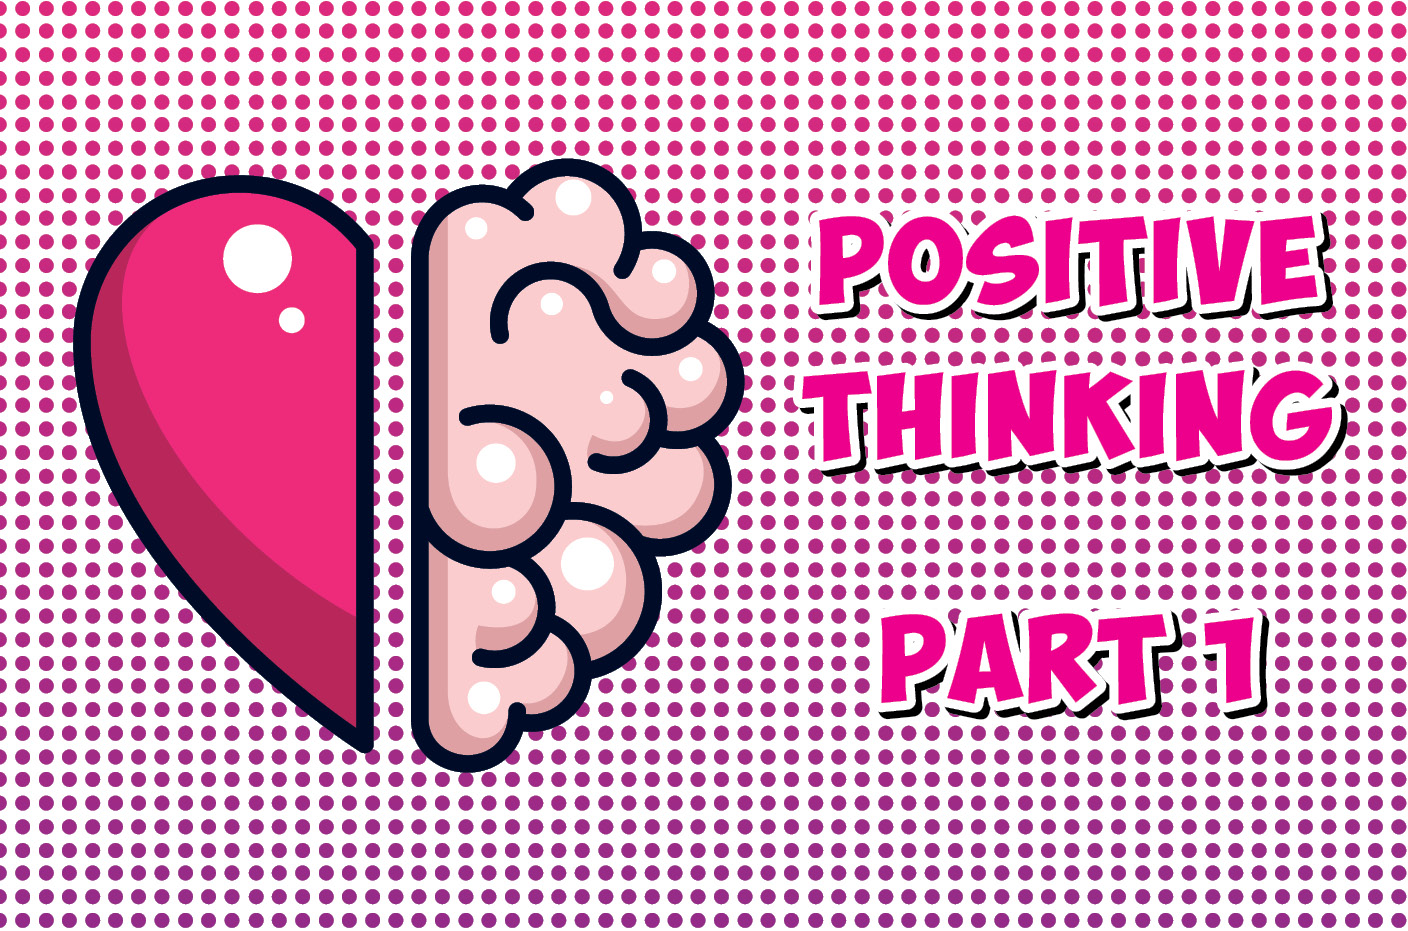 Positive Thinking Part 1: Tapping Into The Power Of Positivity